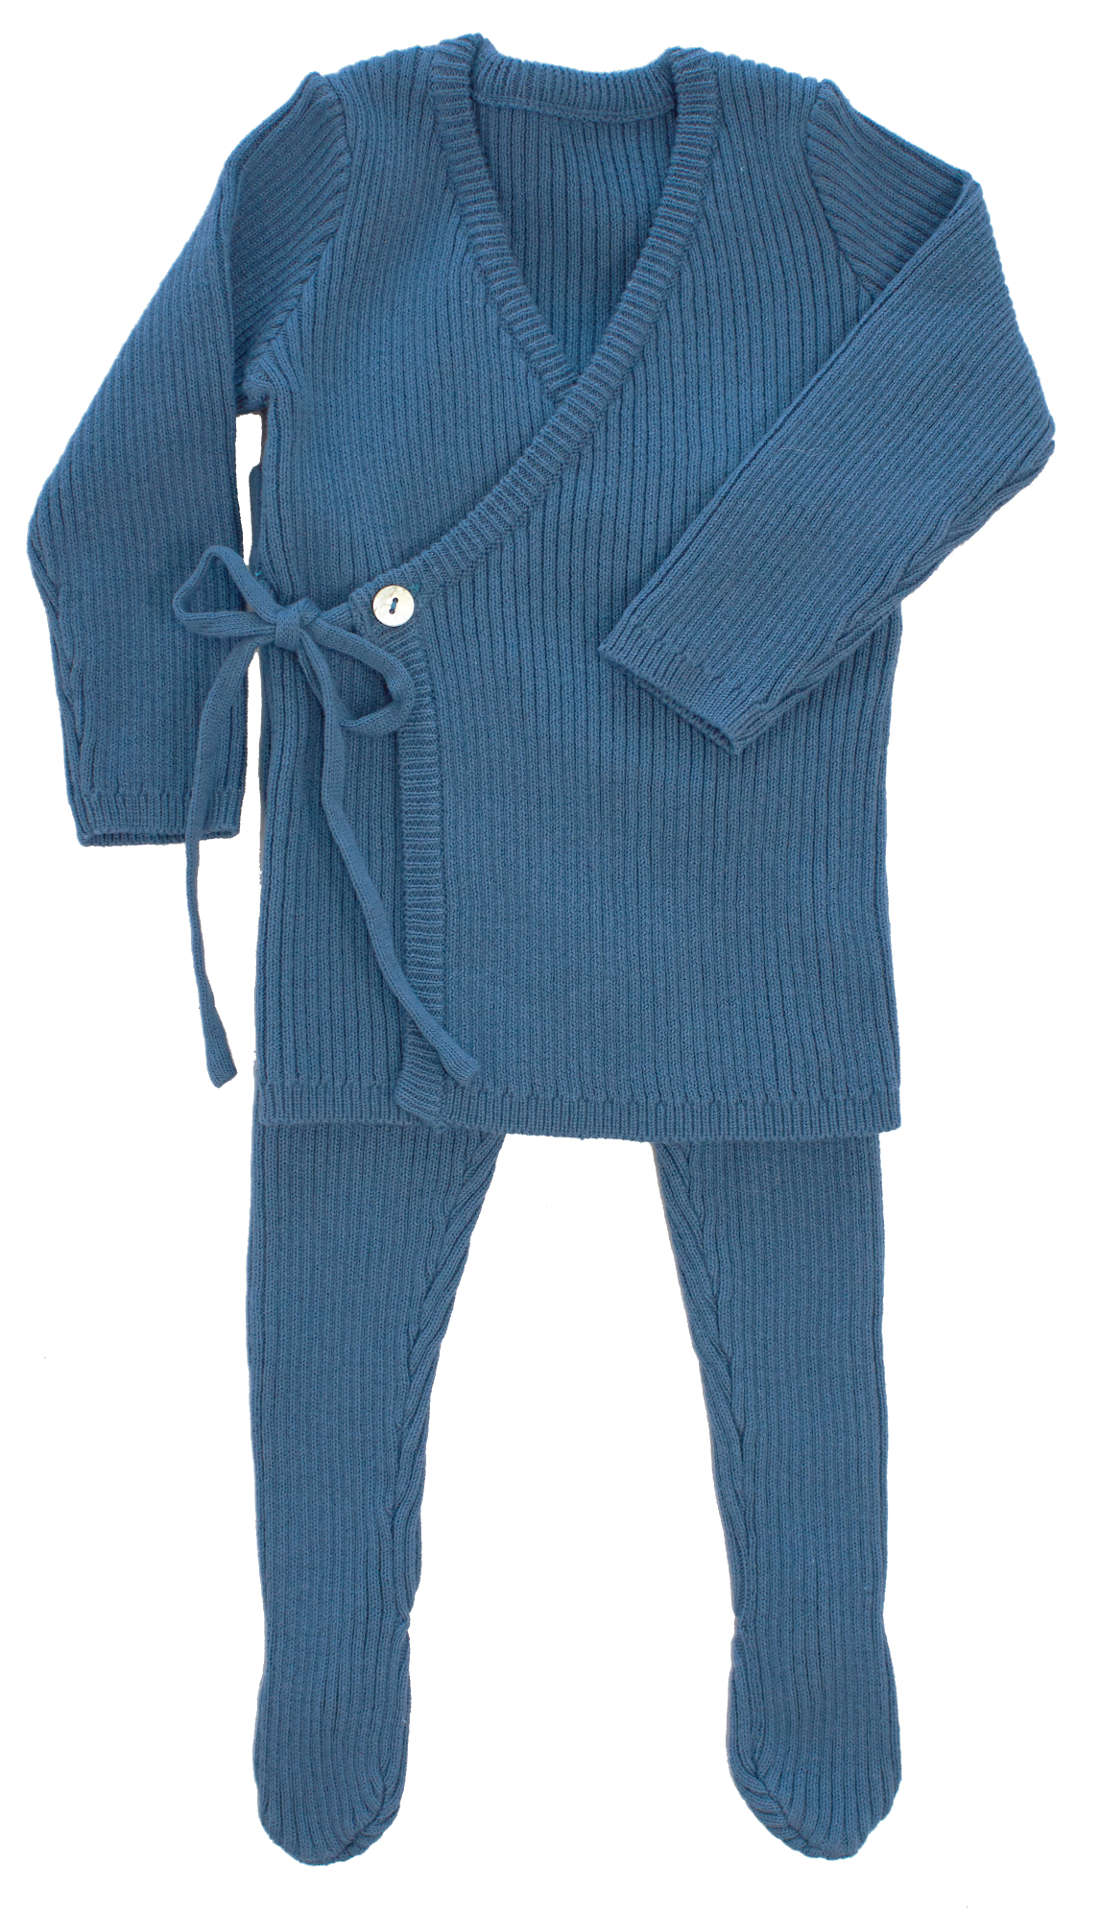 Kipp Blue Rib Knit Wrap Set